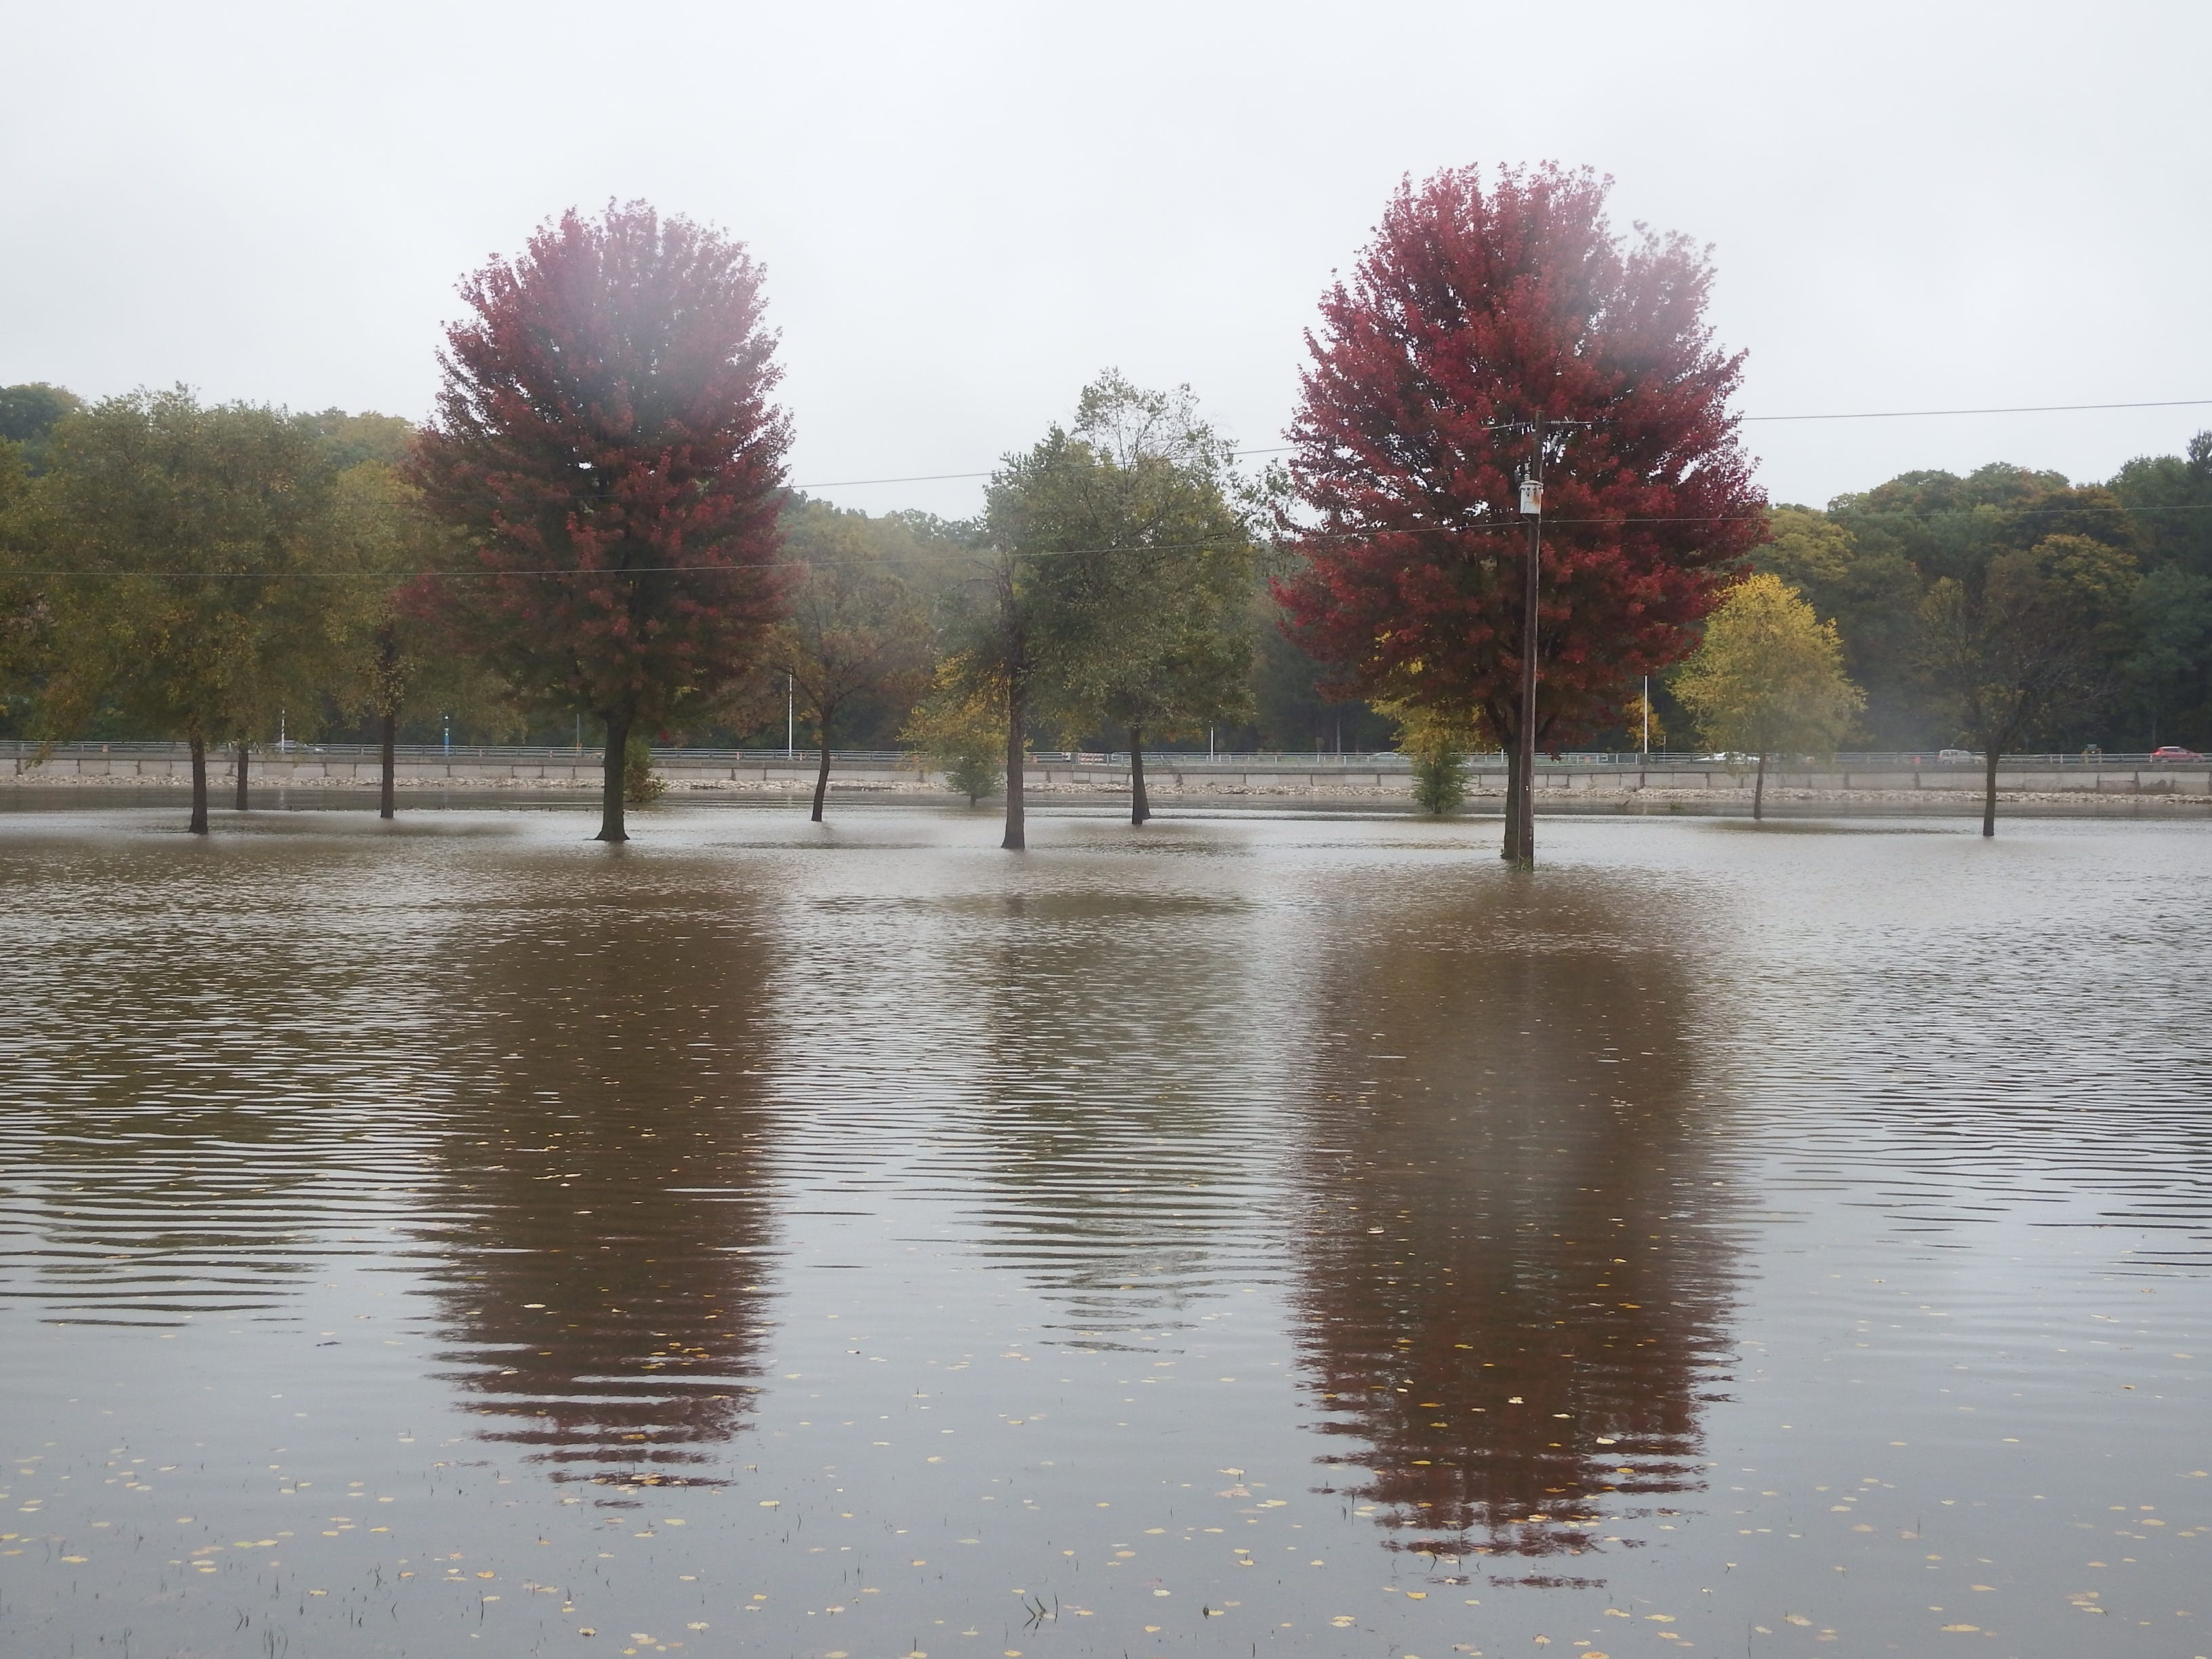 The Iowa River in Iowa City at major flood stage.